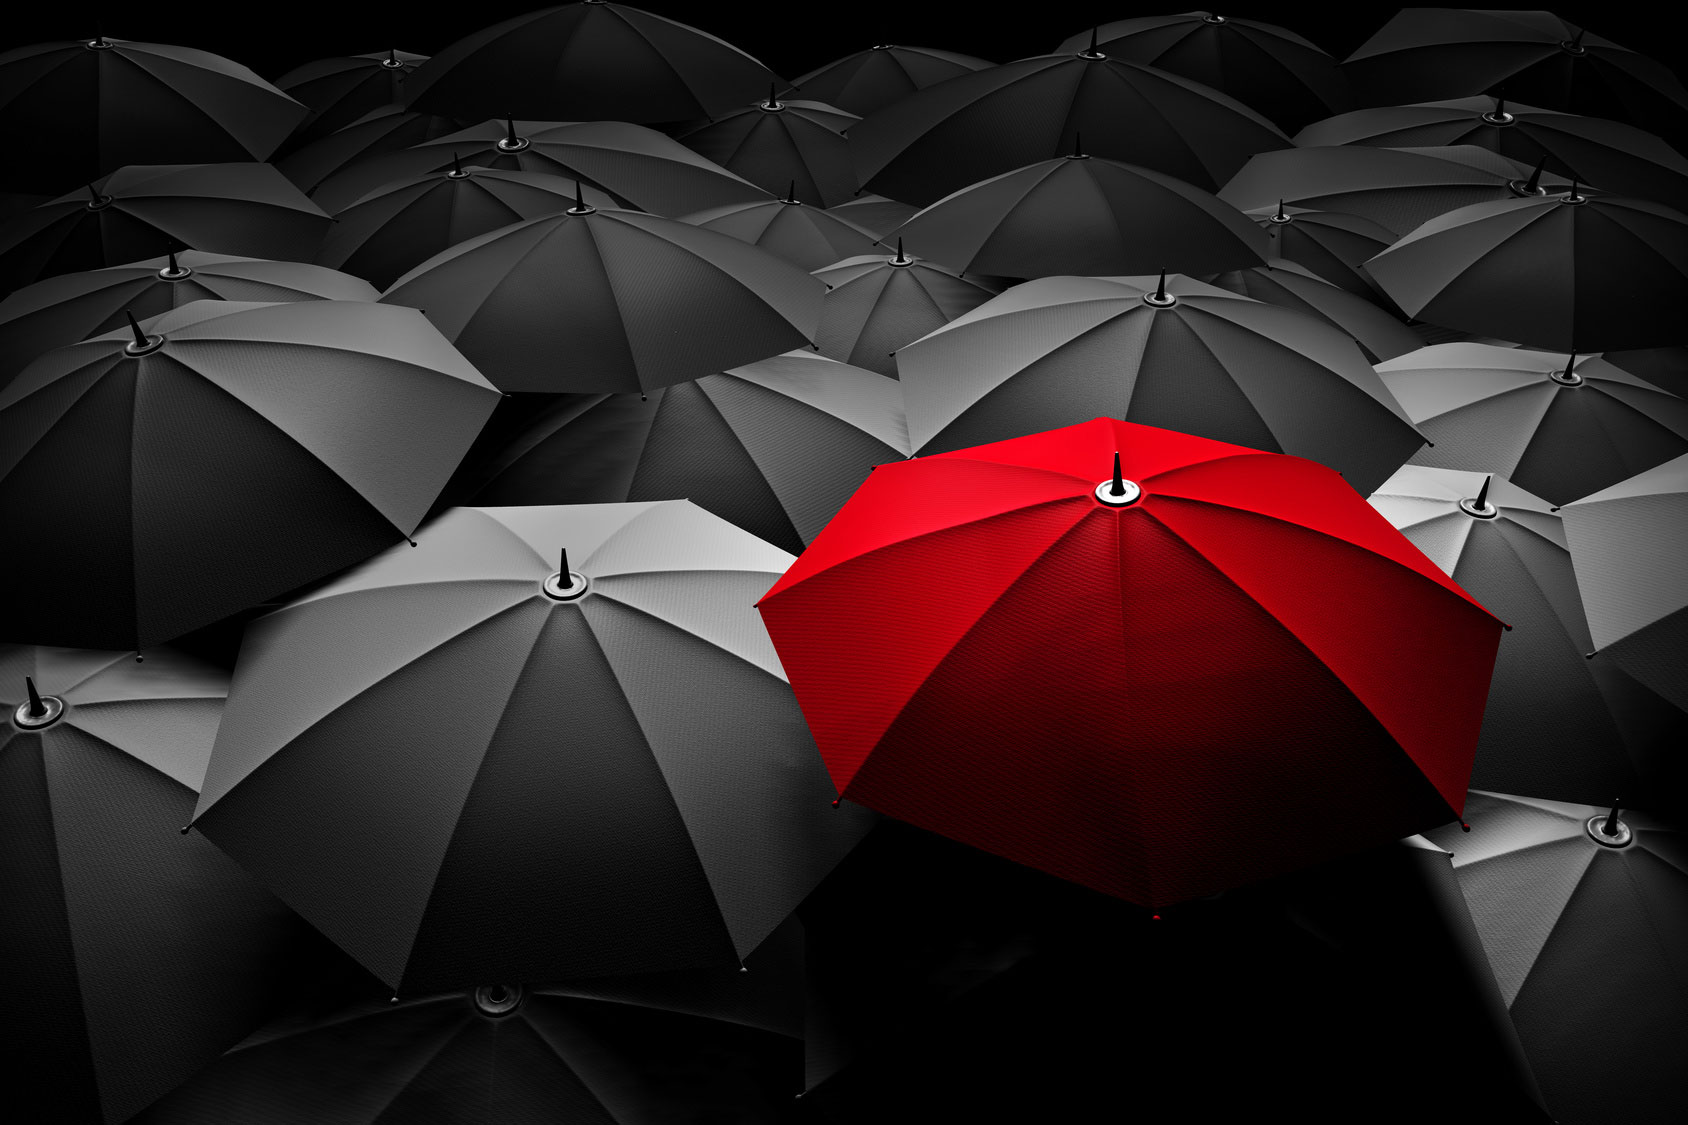 Be Prepared: You Need Umbrella Insurance